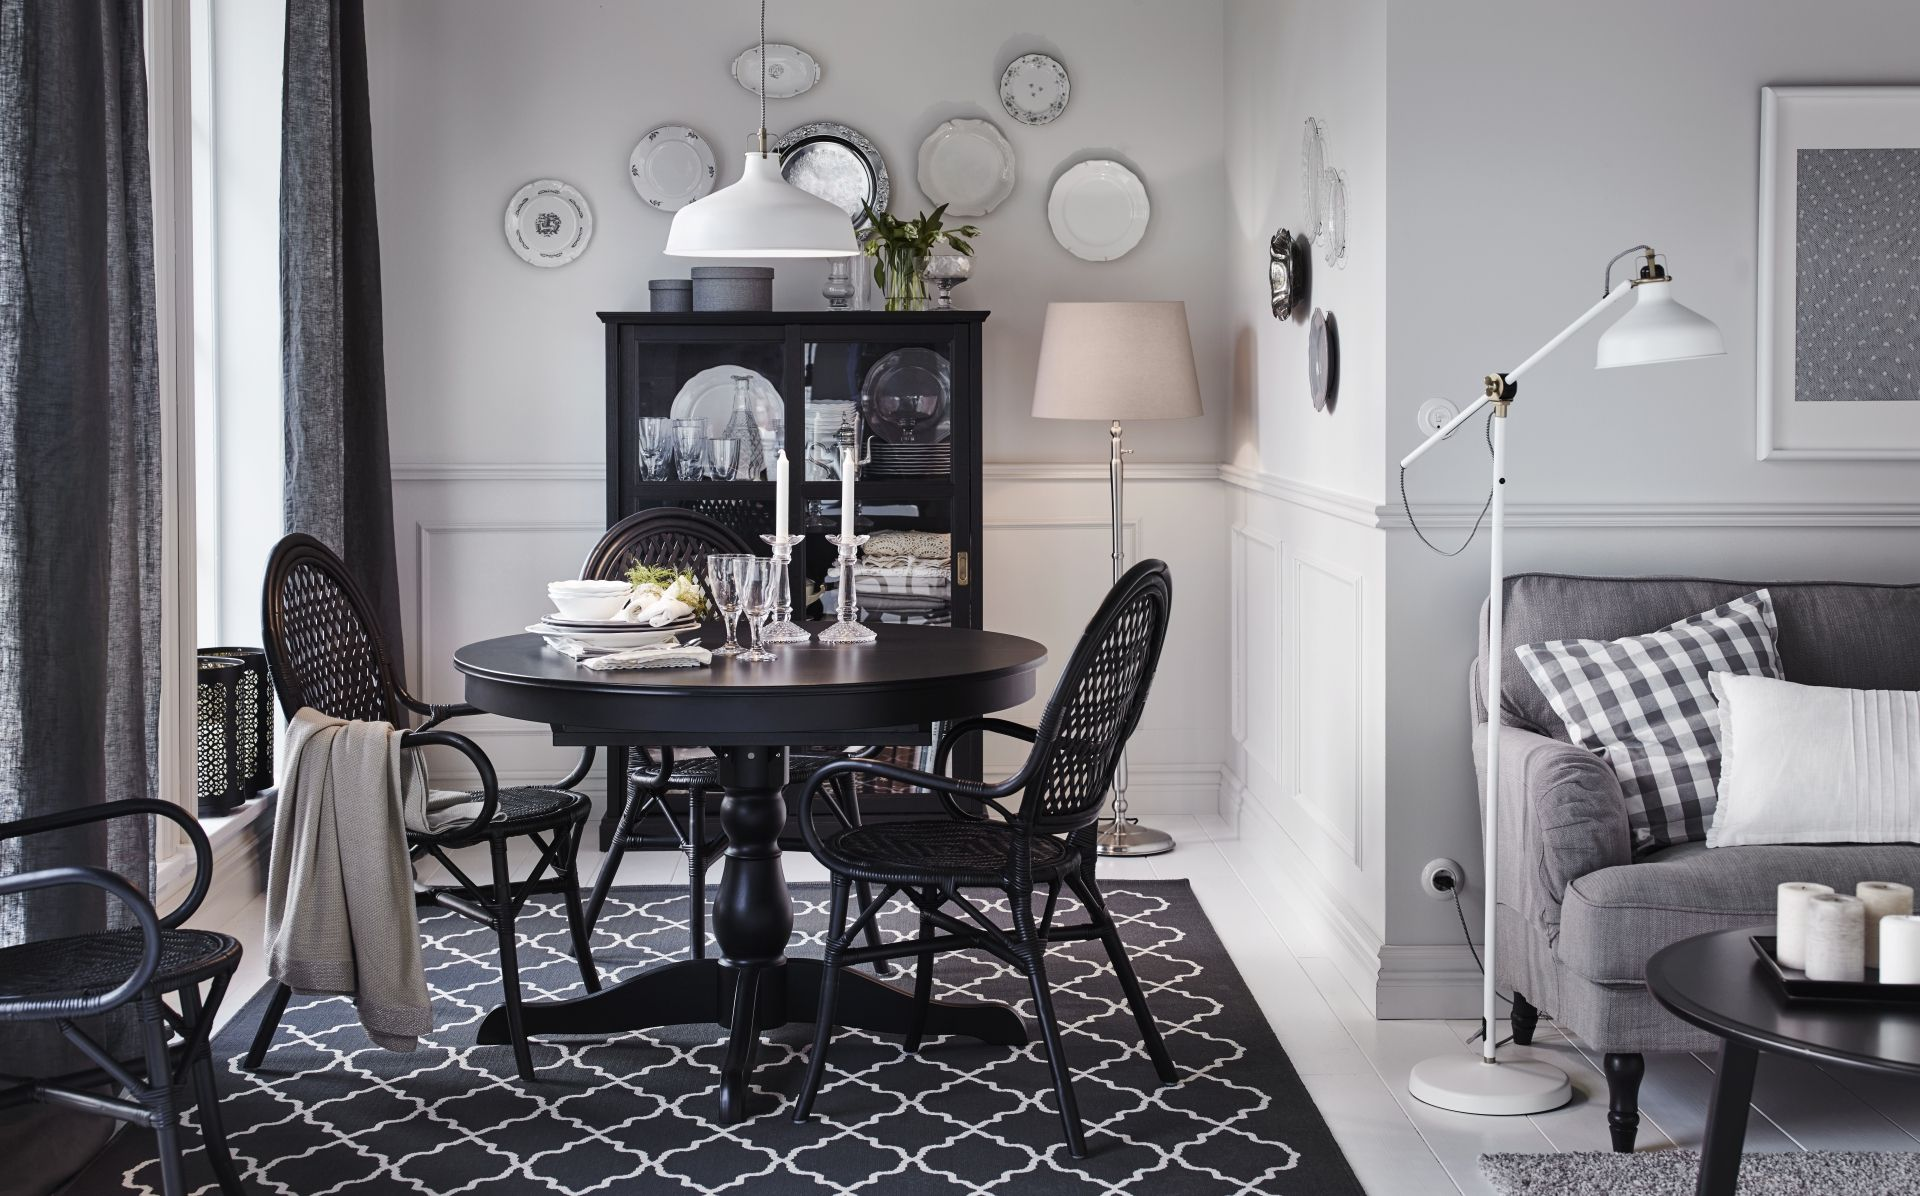 Gallery of lmsta ikea ikeanl designdroom inspiratie for Slaapkamer hotelsfeer